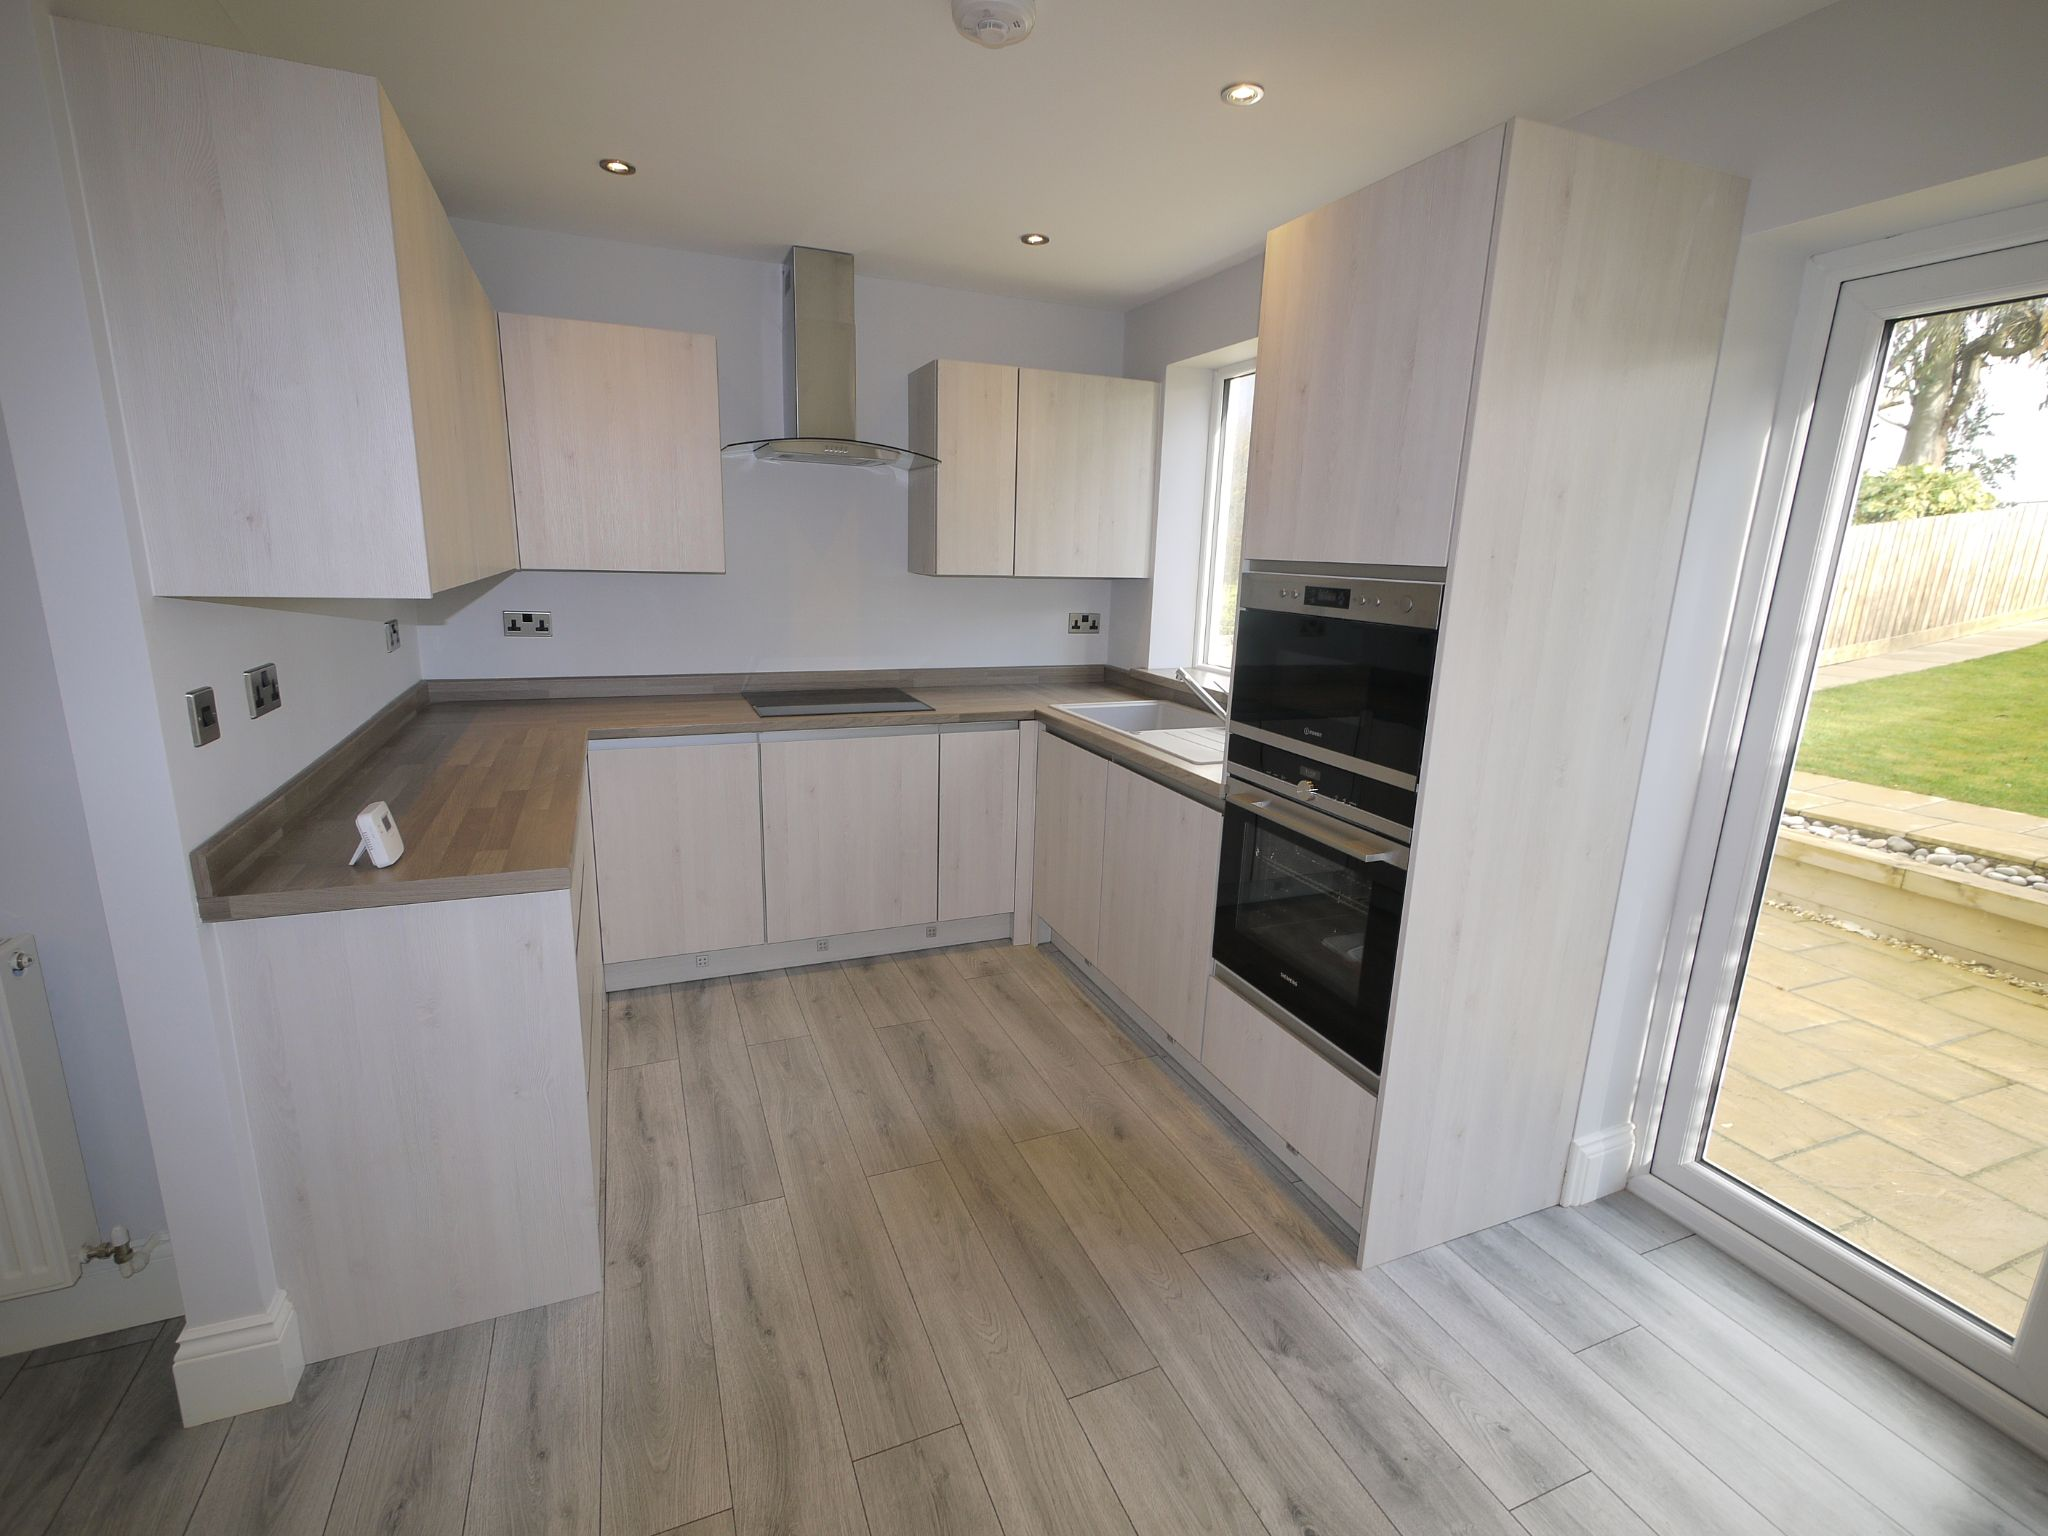 3 bedroom end terraced house SSTC in Brighouse - Dining Kitchen.